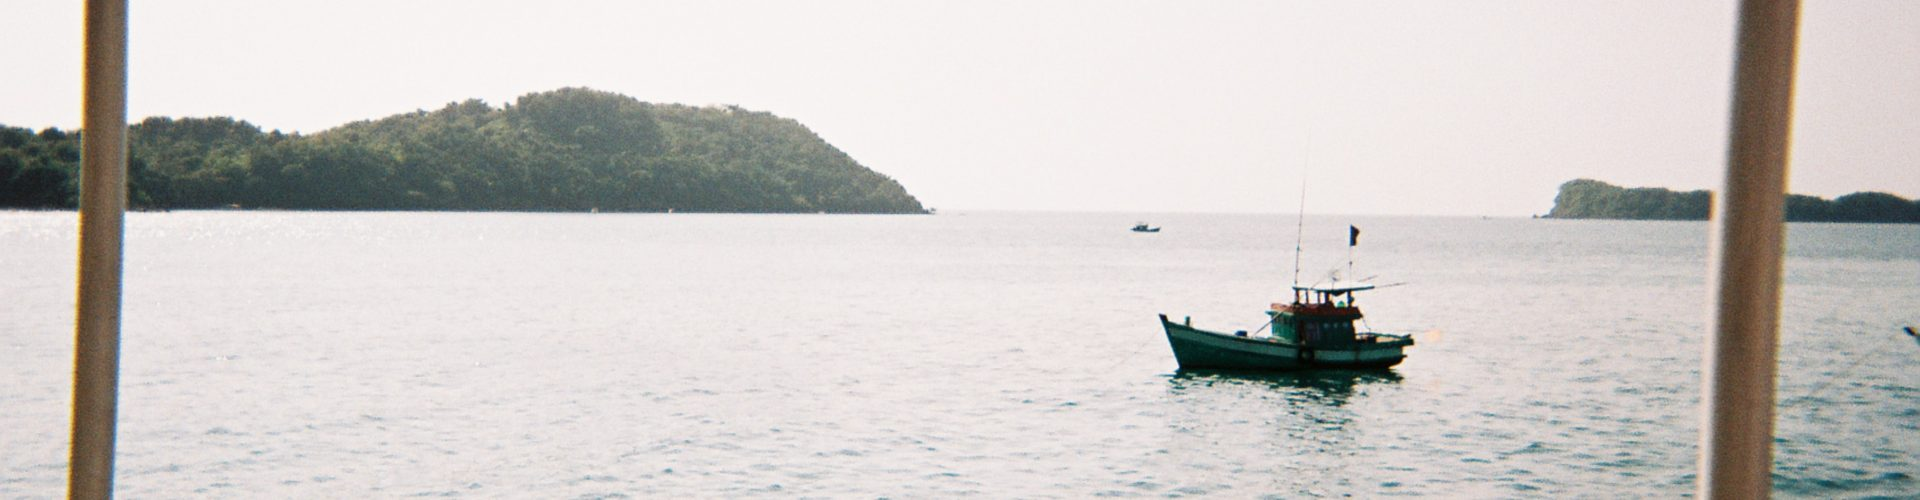 Community-based fisheries organisations and sustainable development: Lessons learned from a comparison between European and Asian countries